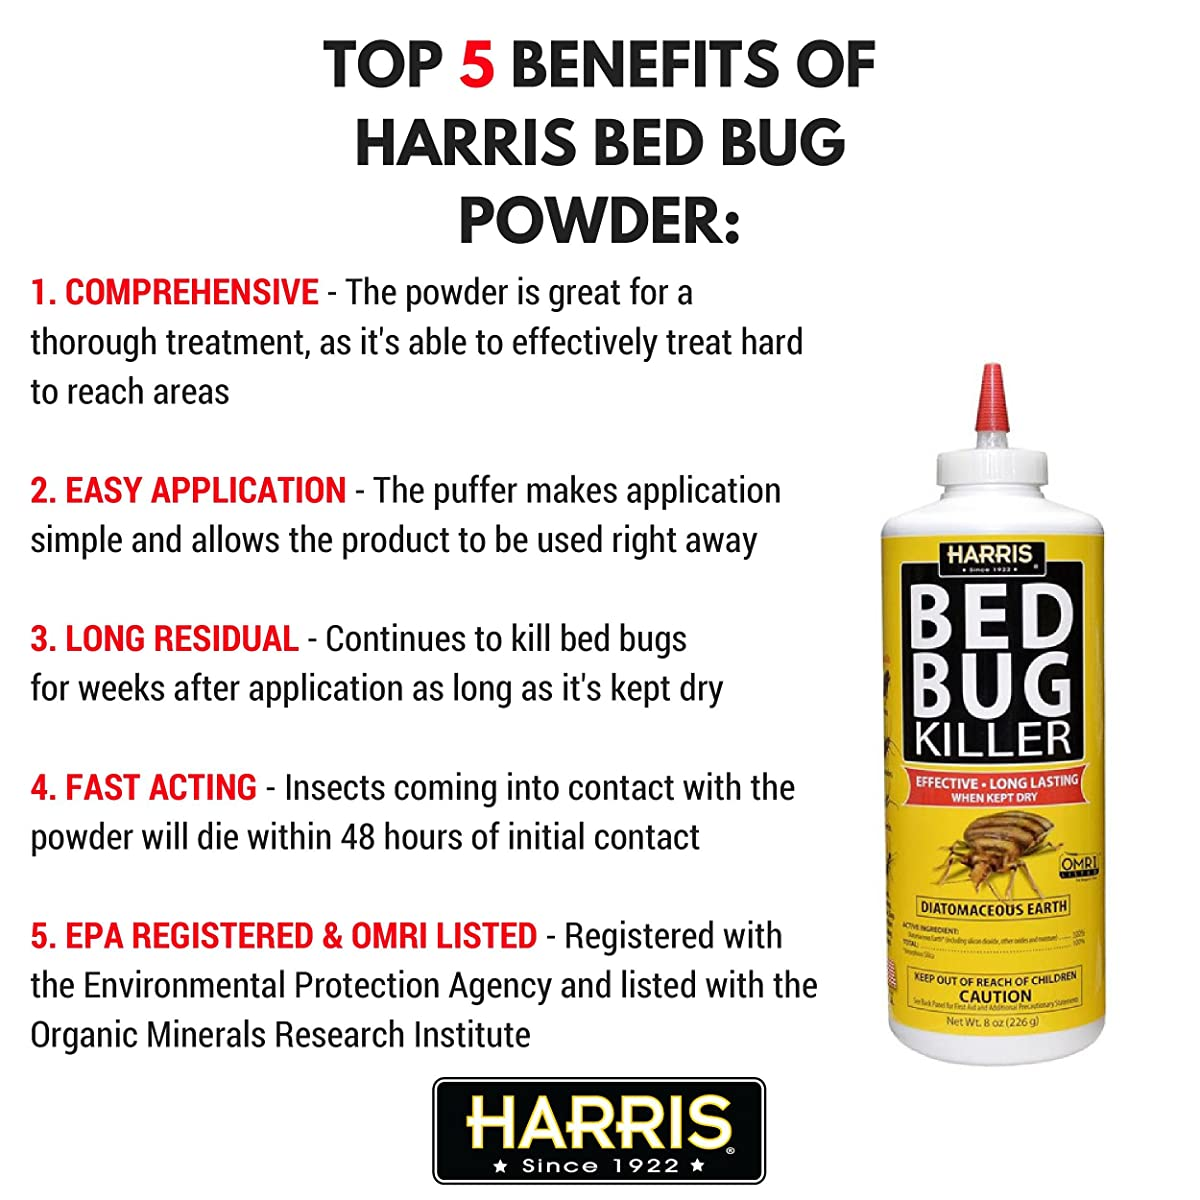 Harris Bed Bug Killer, Diatomaceous Earth Powder 1/2 LB, Fast Kill with Extended Residual Protection